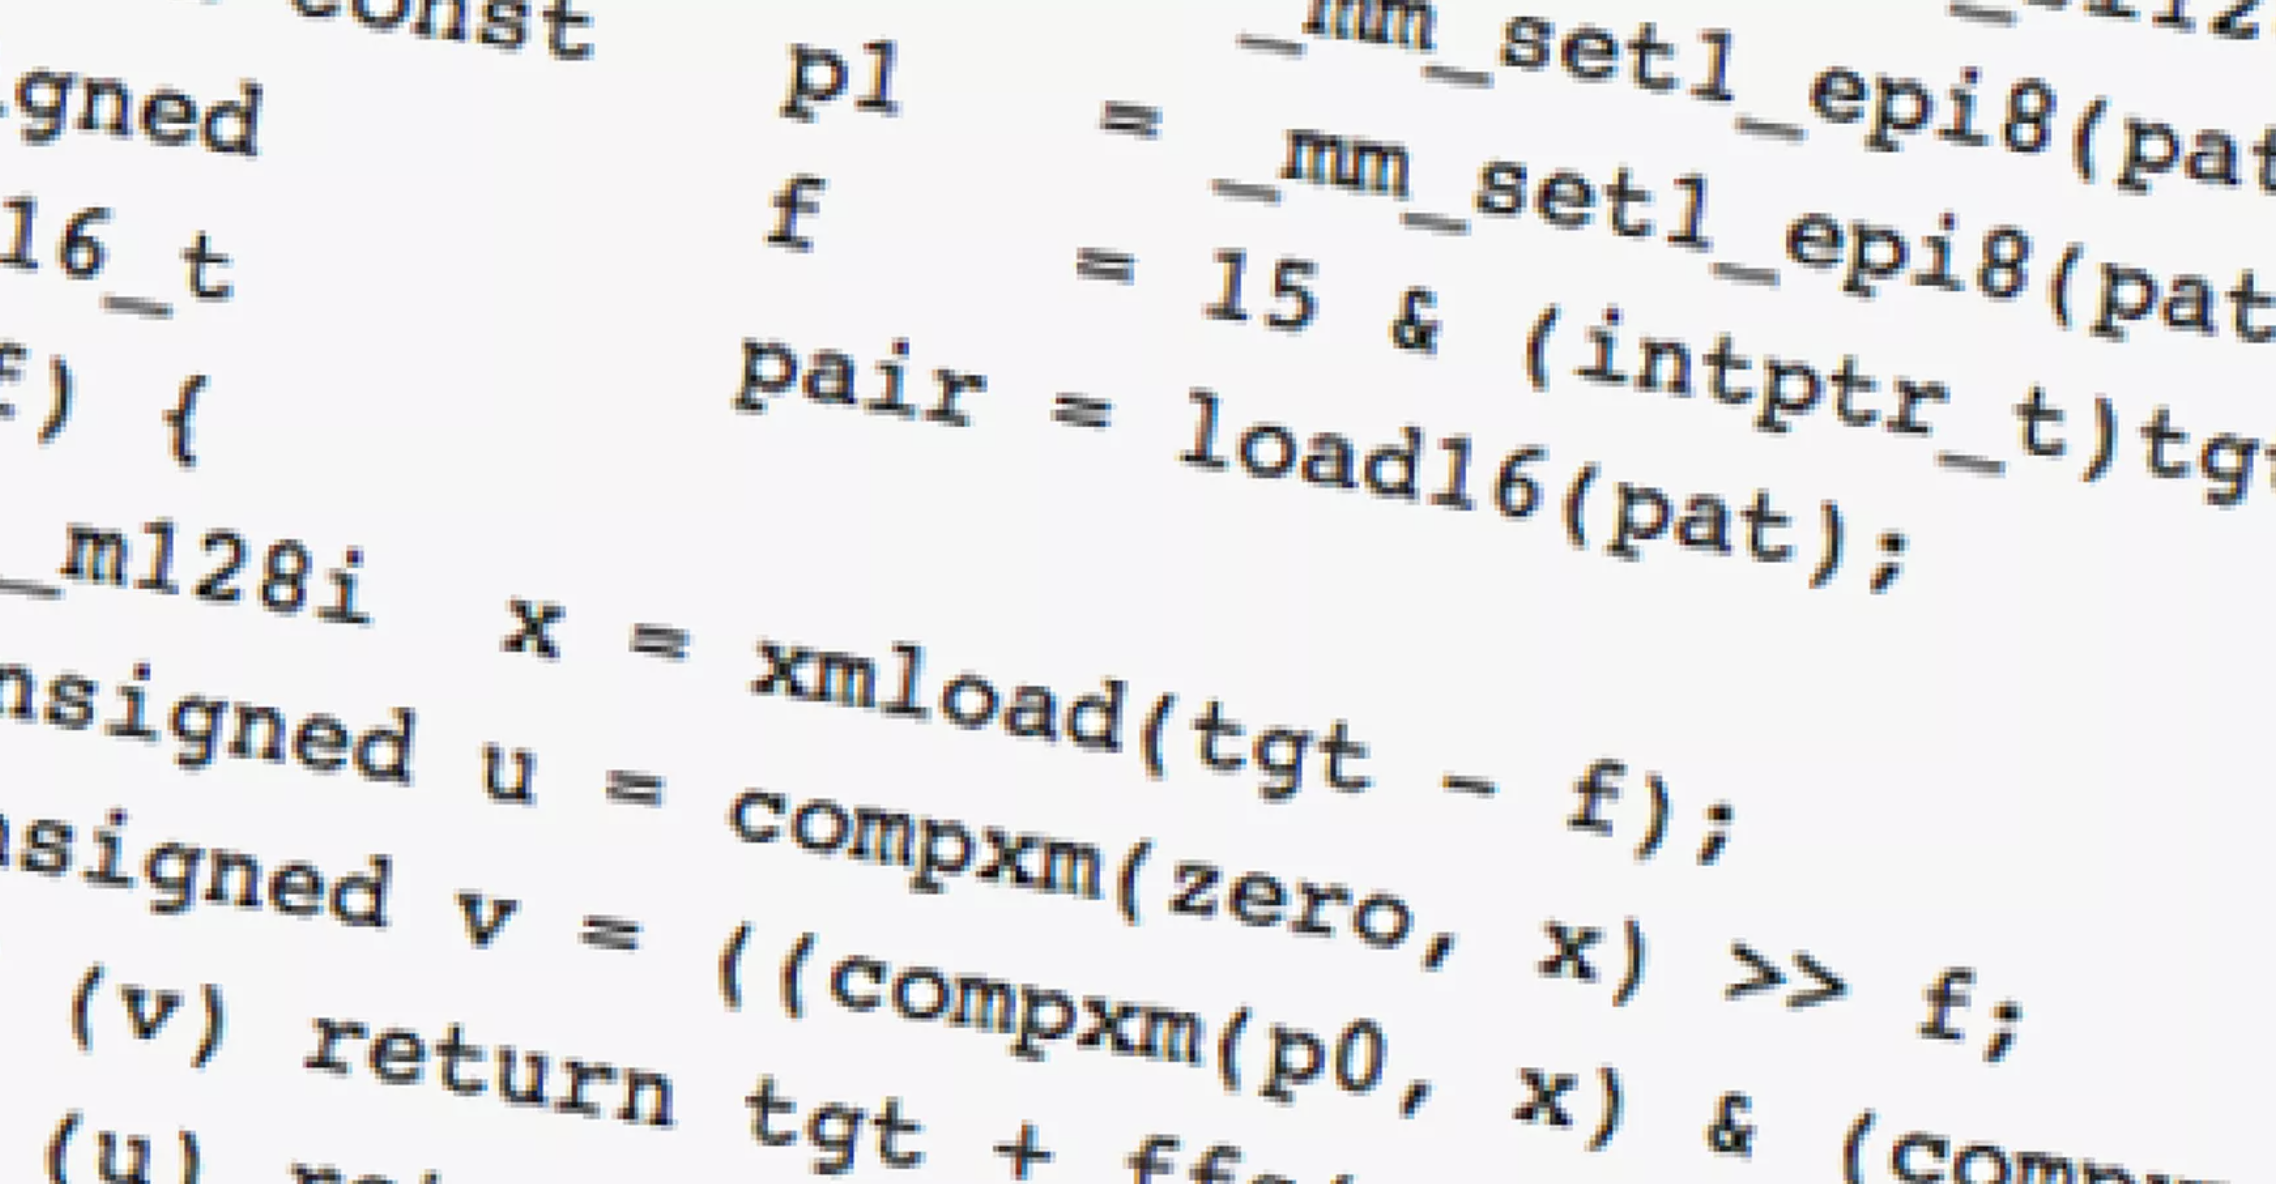 How Fast Can You Grep?